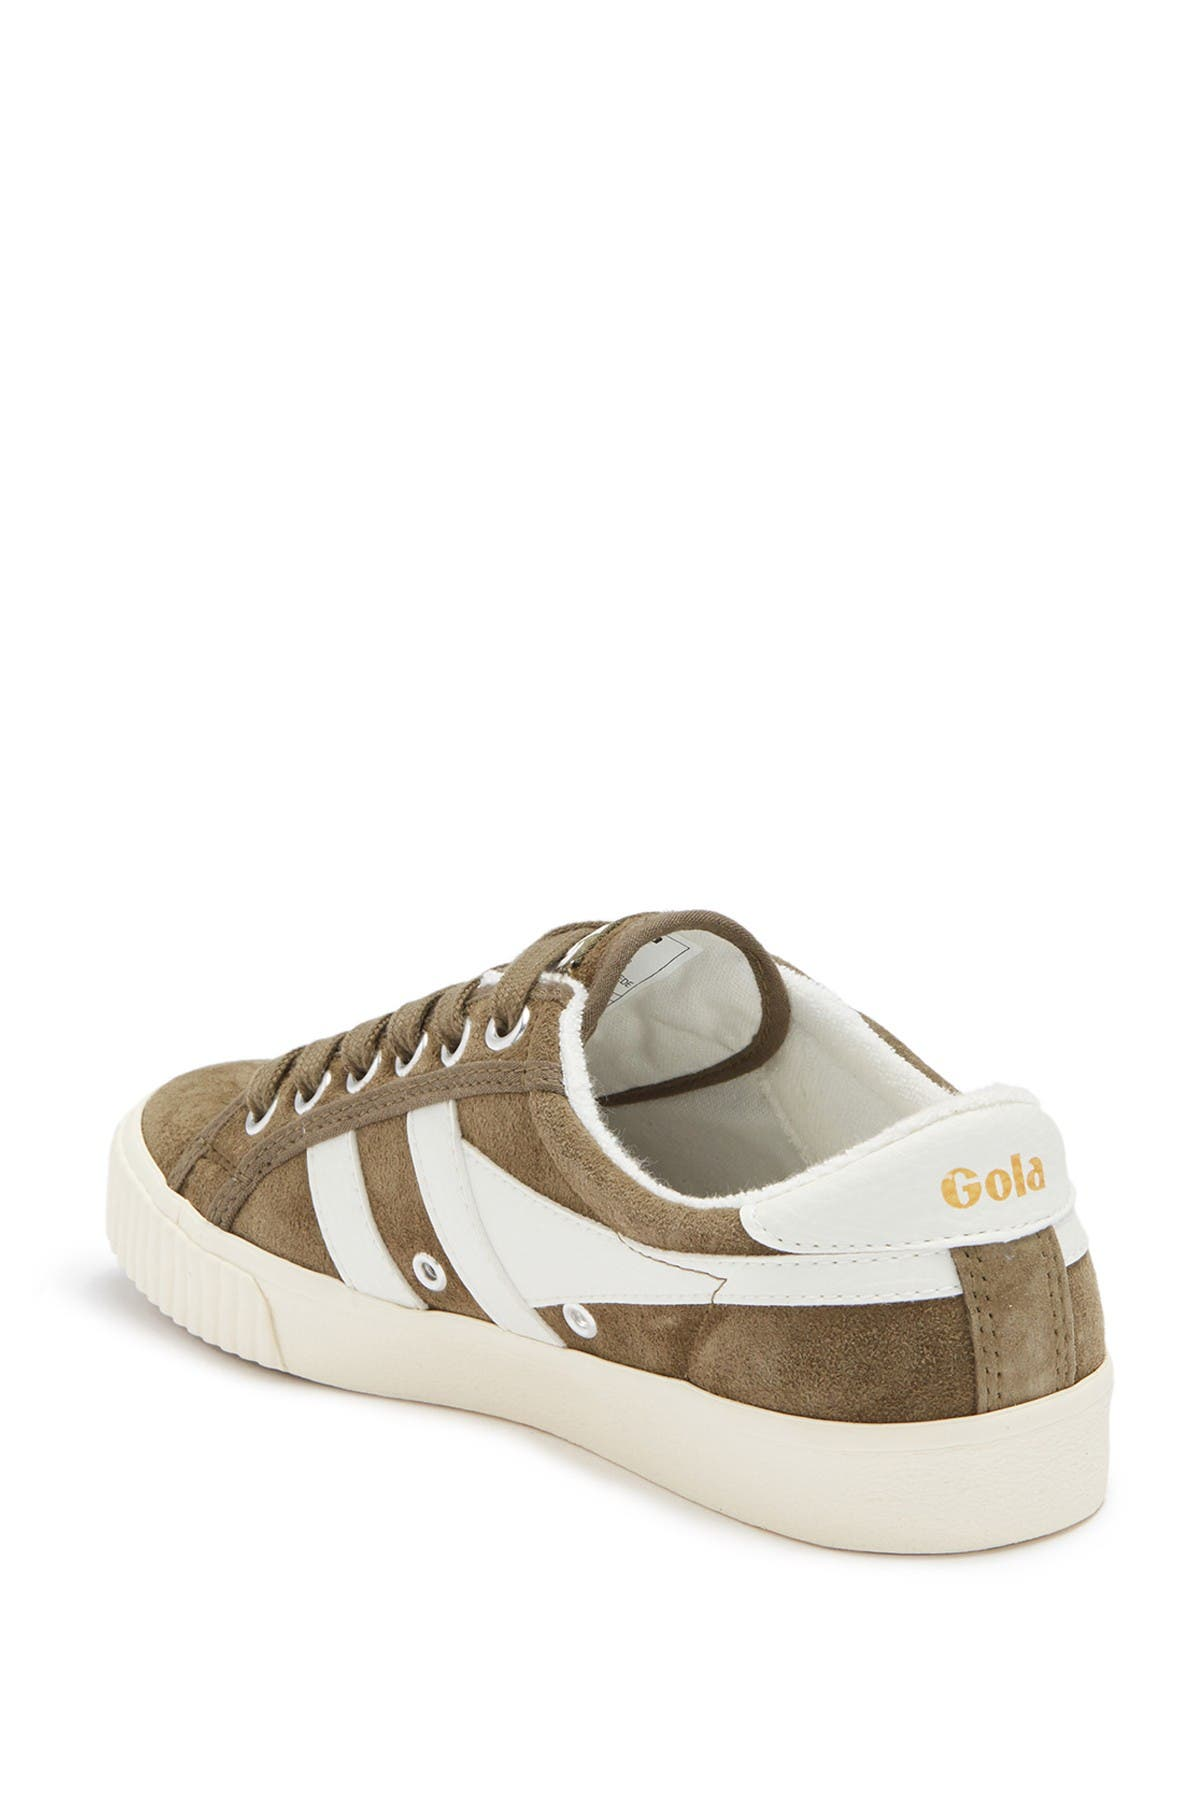 Image of Gola Tennis Mark Cox Suede Sneaker